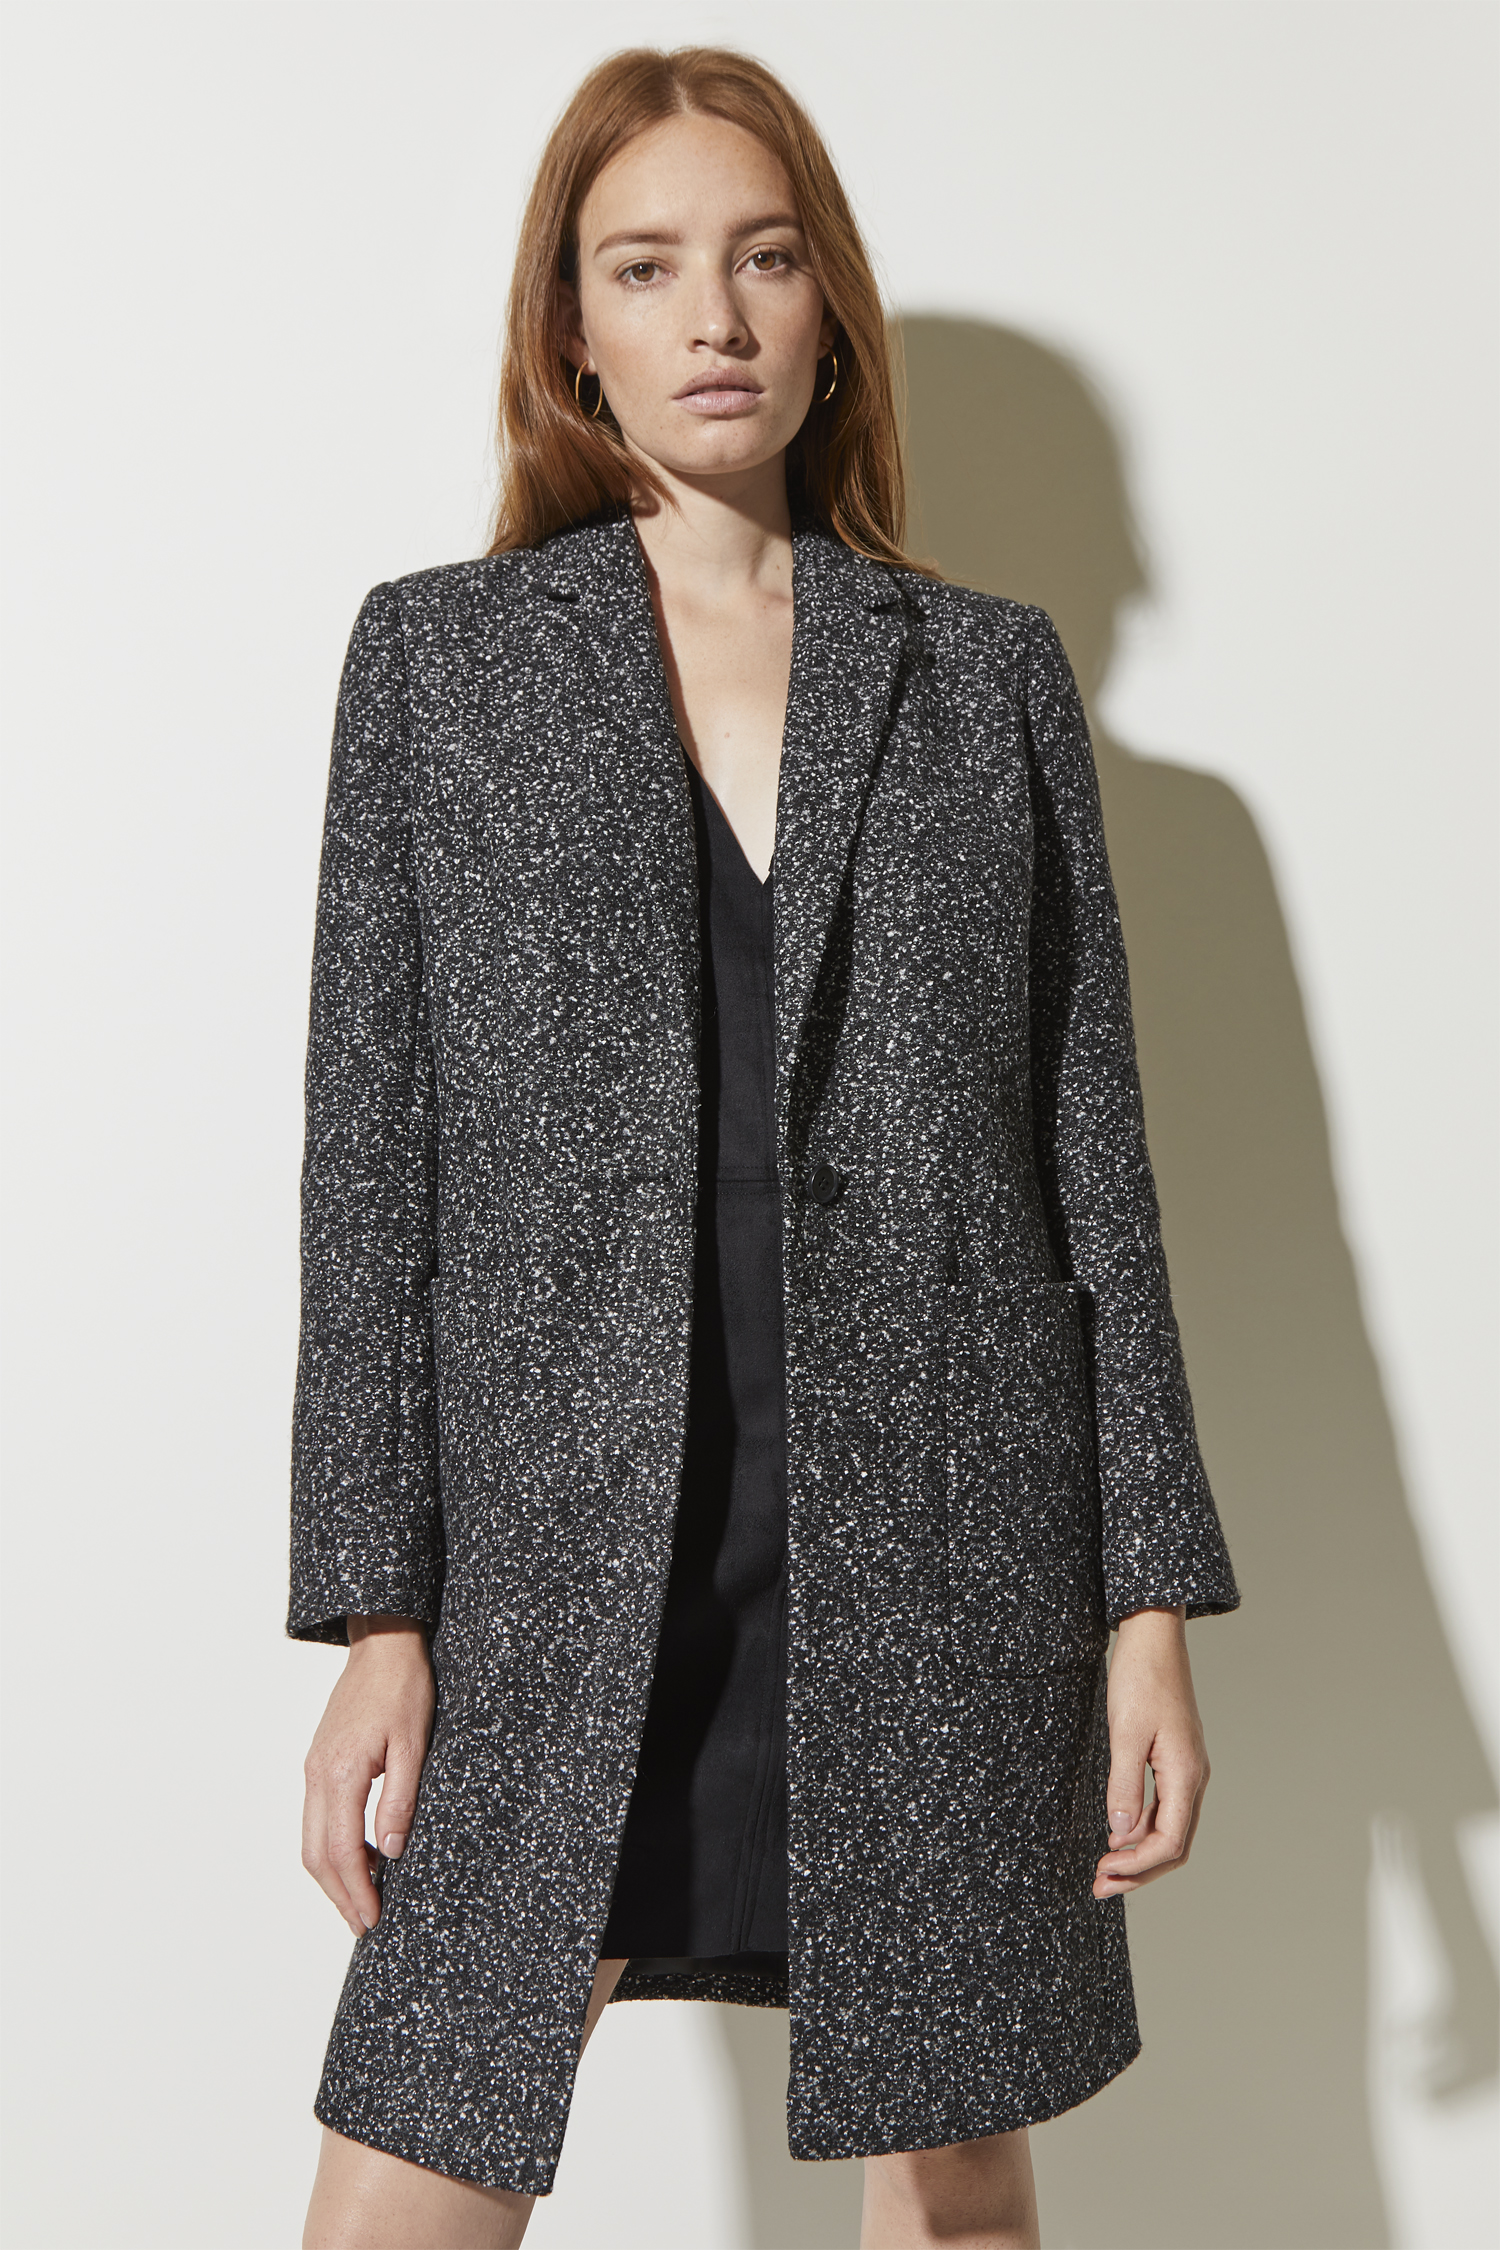 wool coats for women